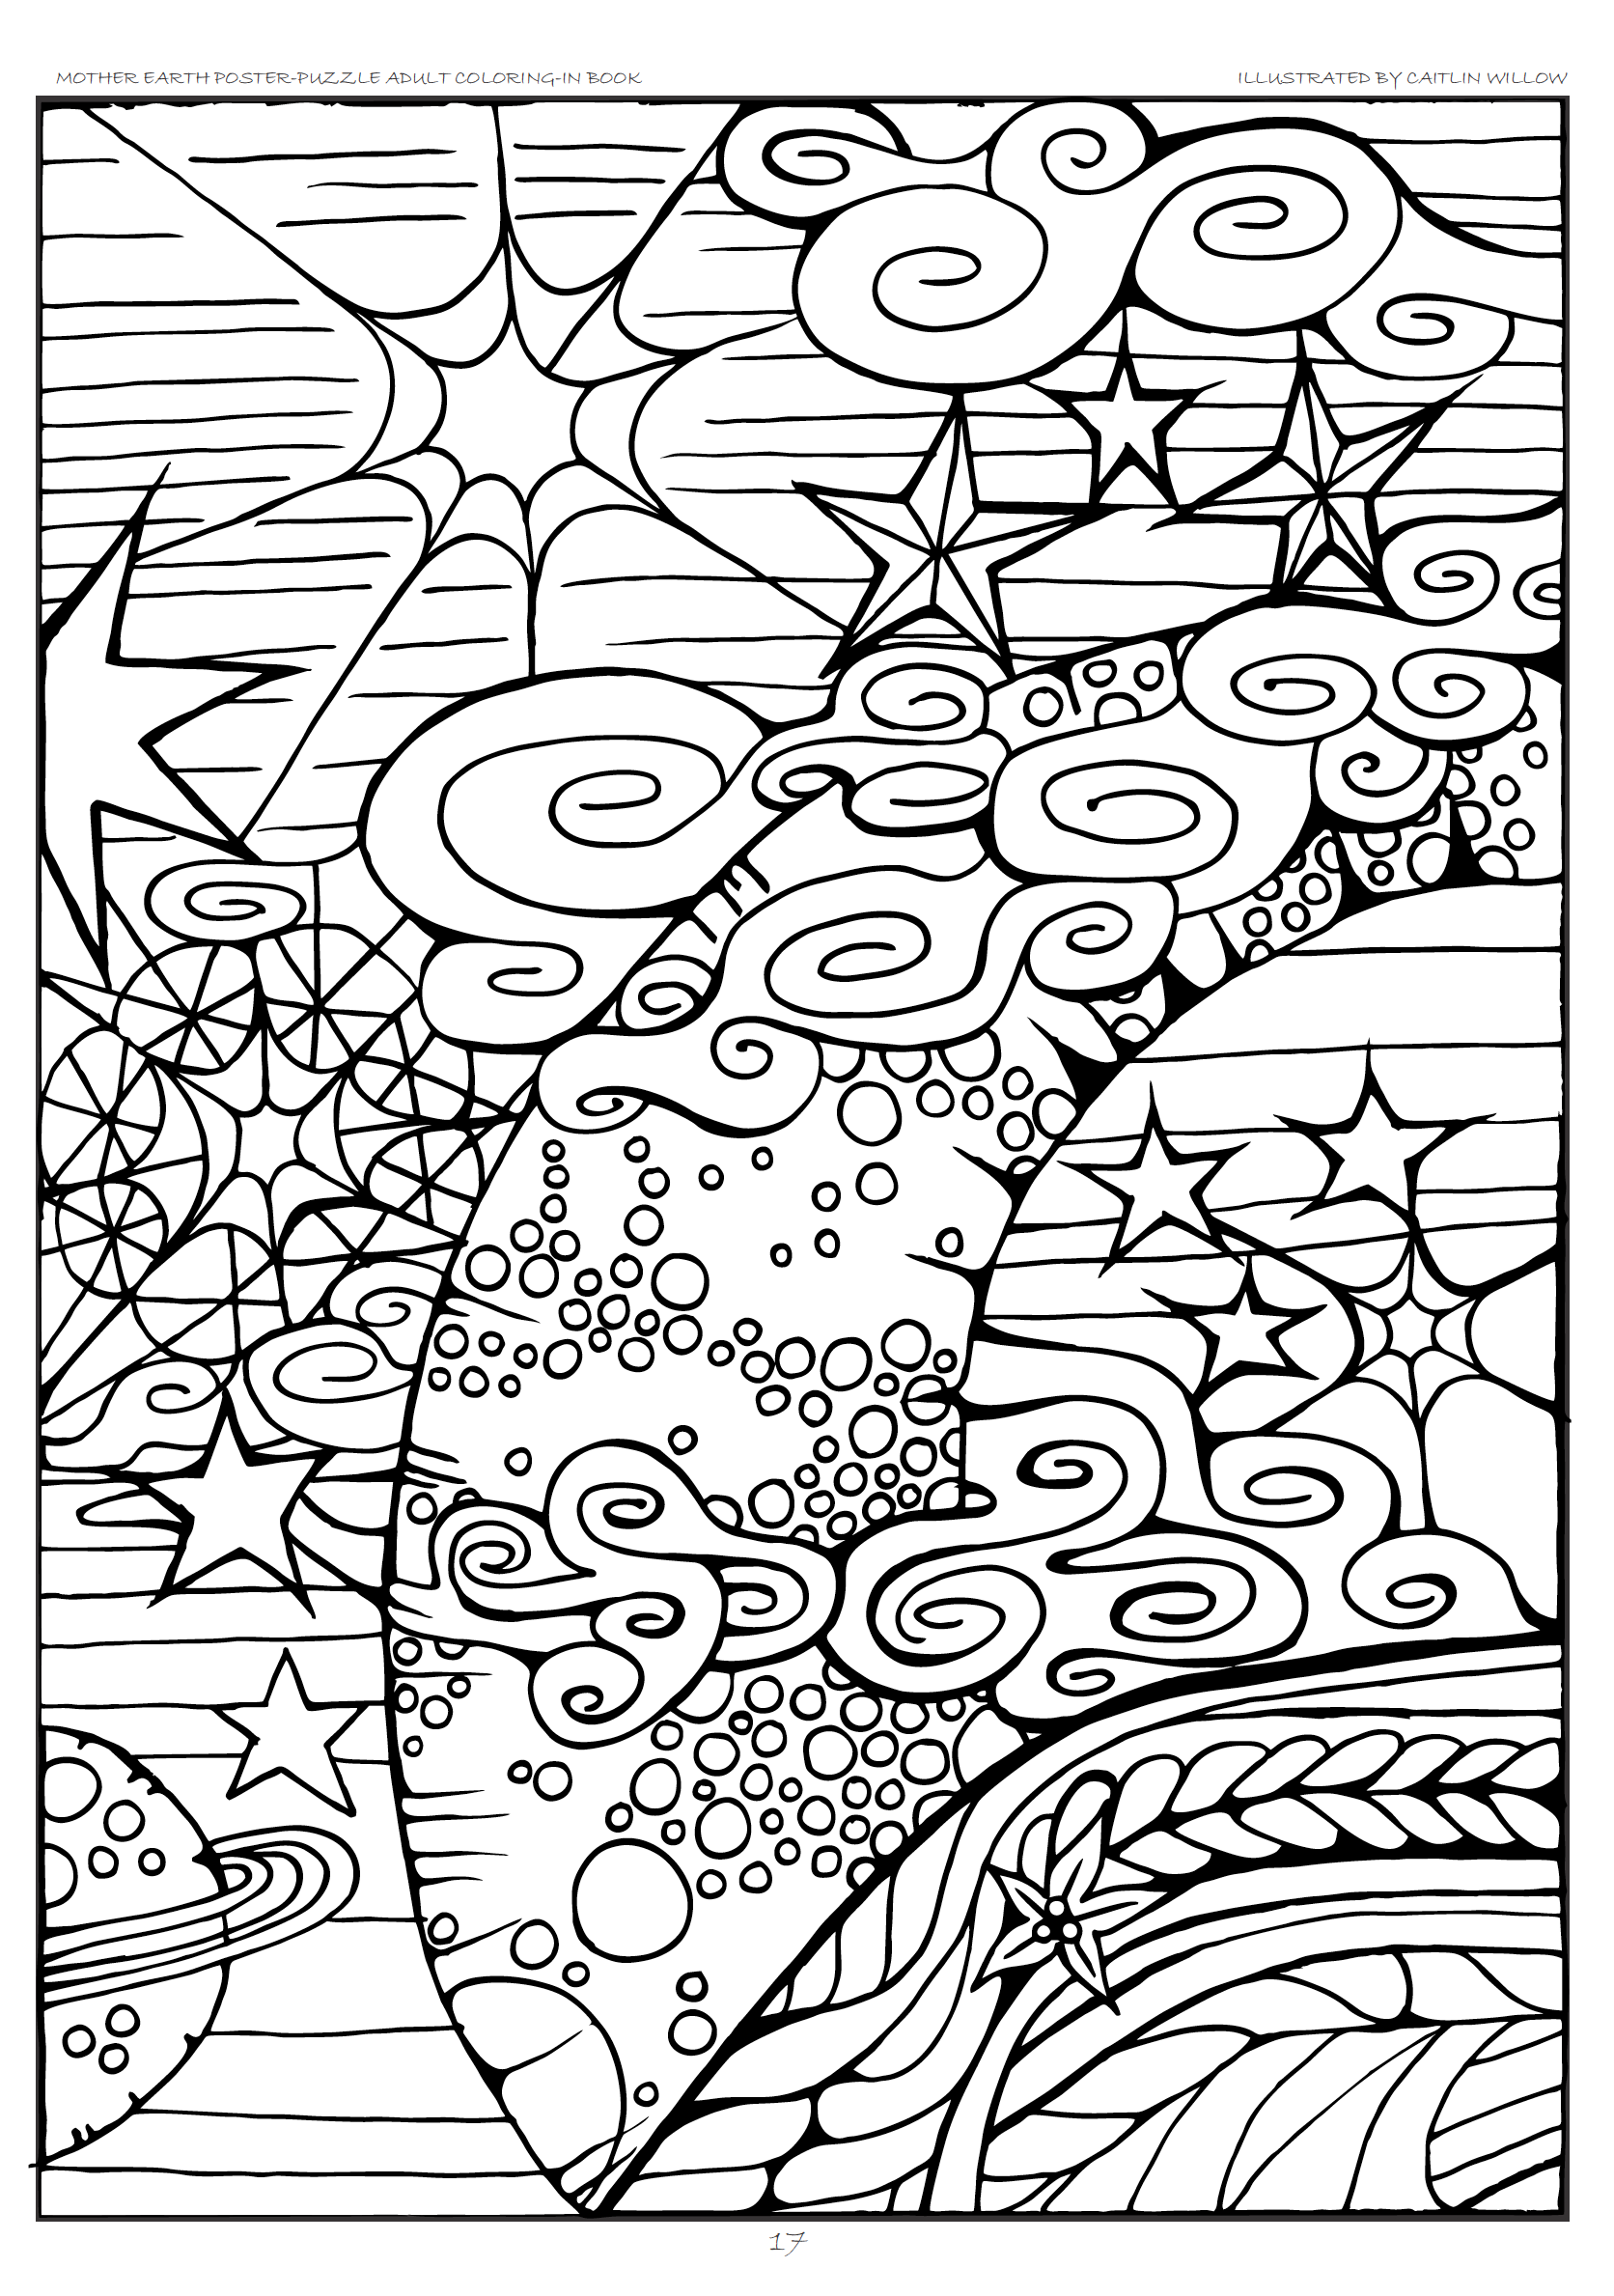 1672x2378 Mother Earth Poster Puzzle Adult Coloring In Book Adult Coloring